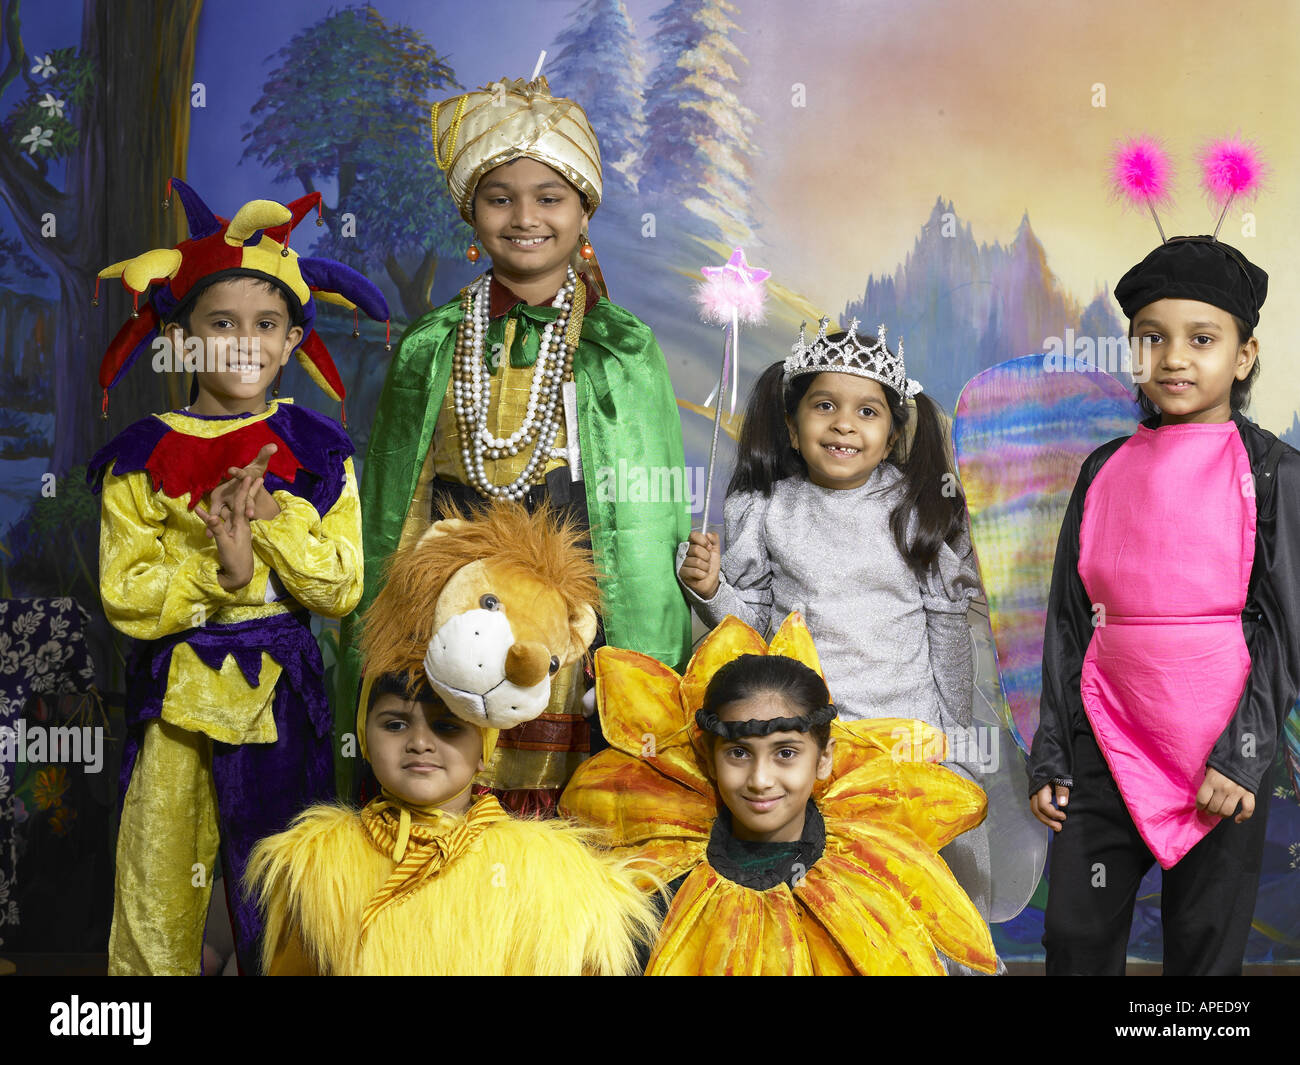 492fcc30d0 South Asian Indian boys and girls performing fancy dress competition on  stage in nursery school MR